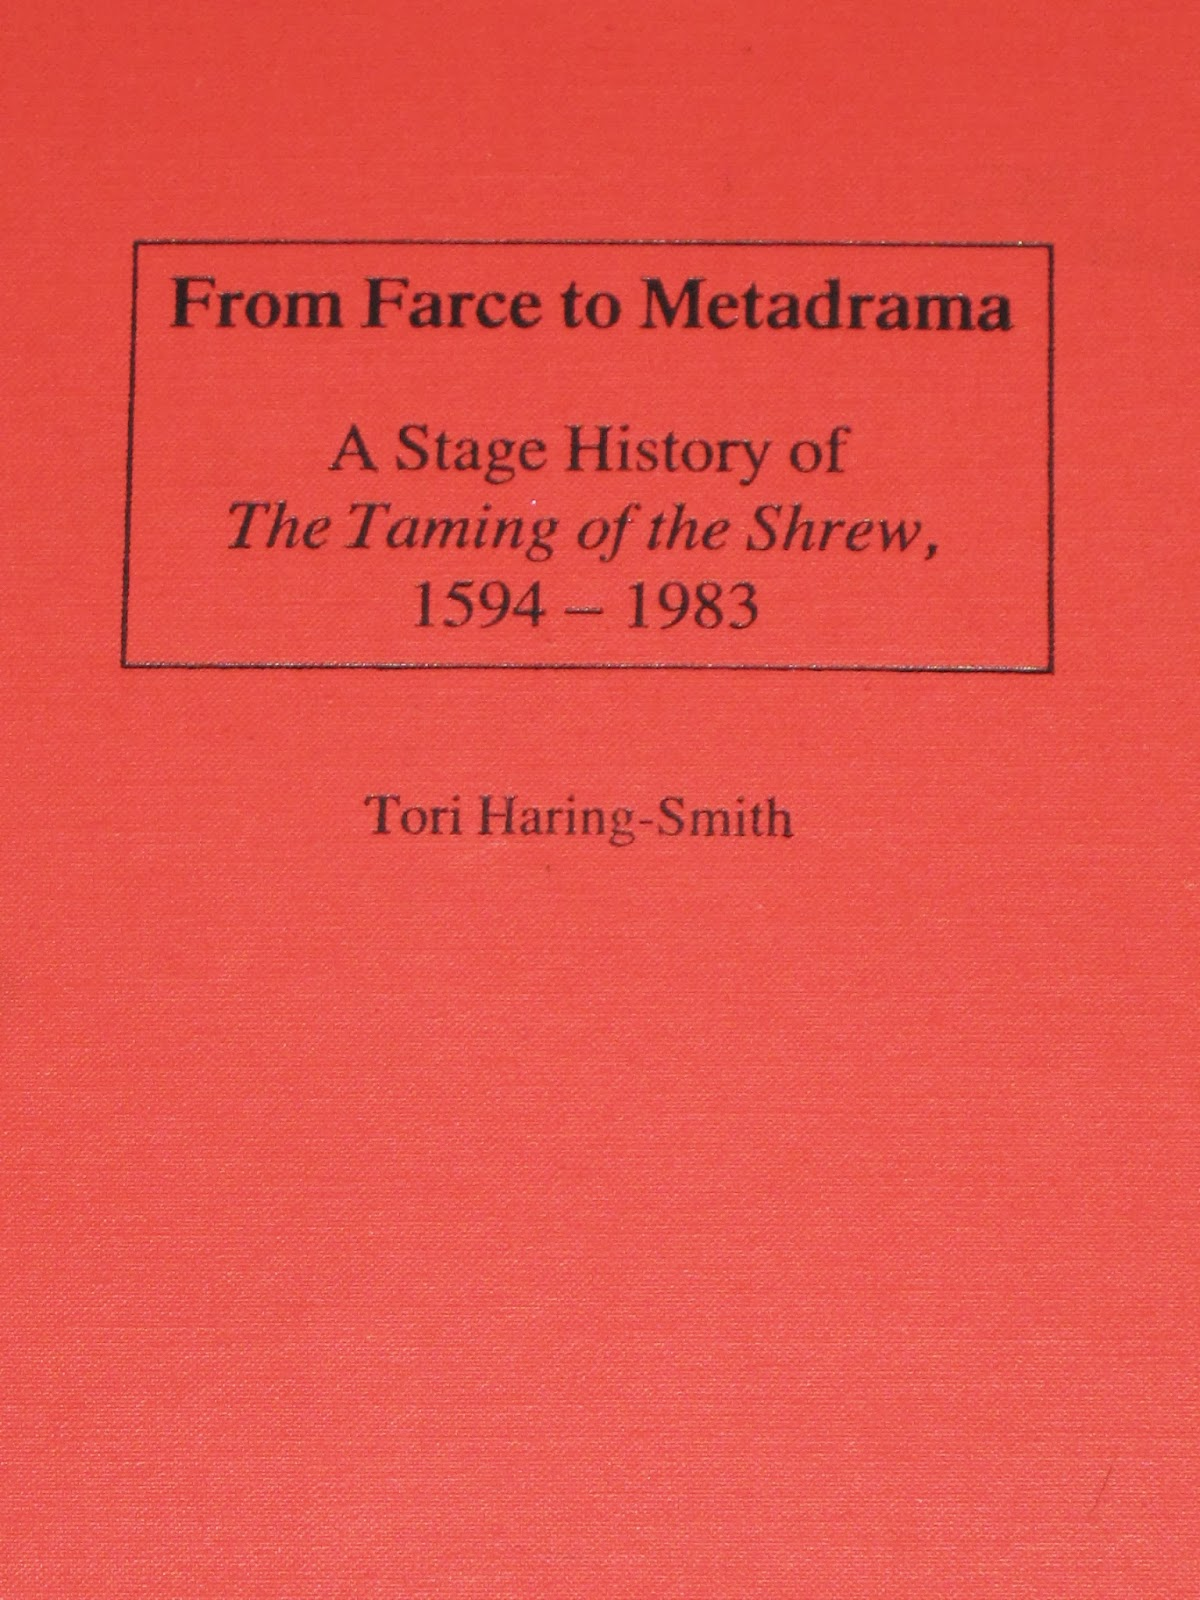 mostly shakespeare but also some occasional nonsense from farce to metadrama a stage history of the taming of the shrew 1594 1983 by tori haring smith this book details the history of the way the taming of